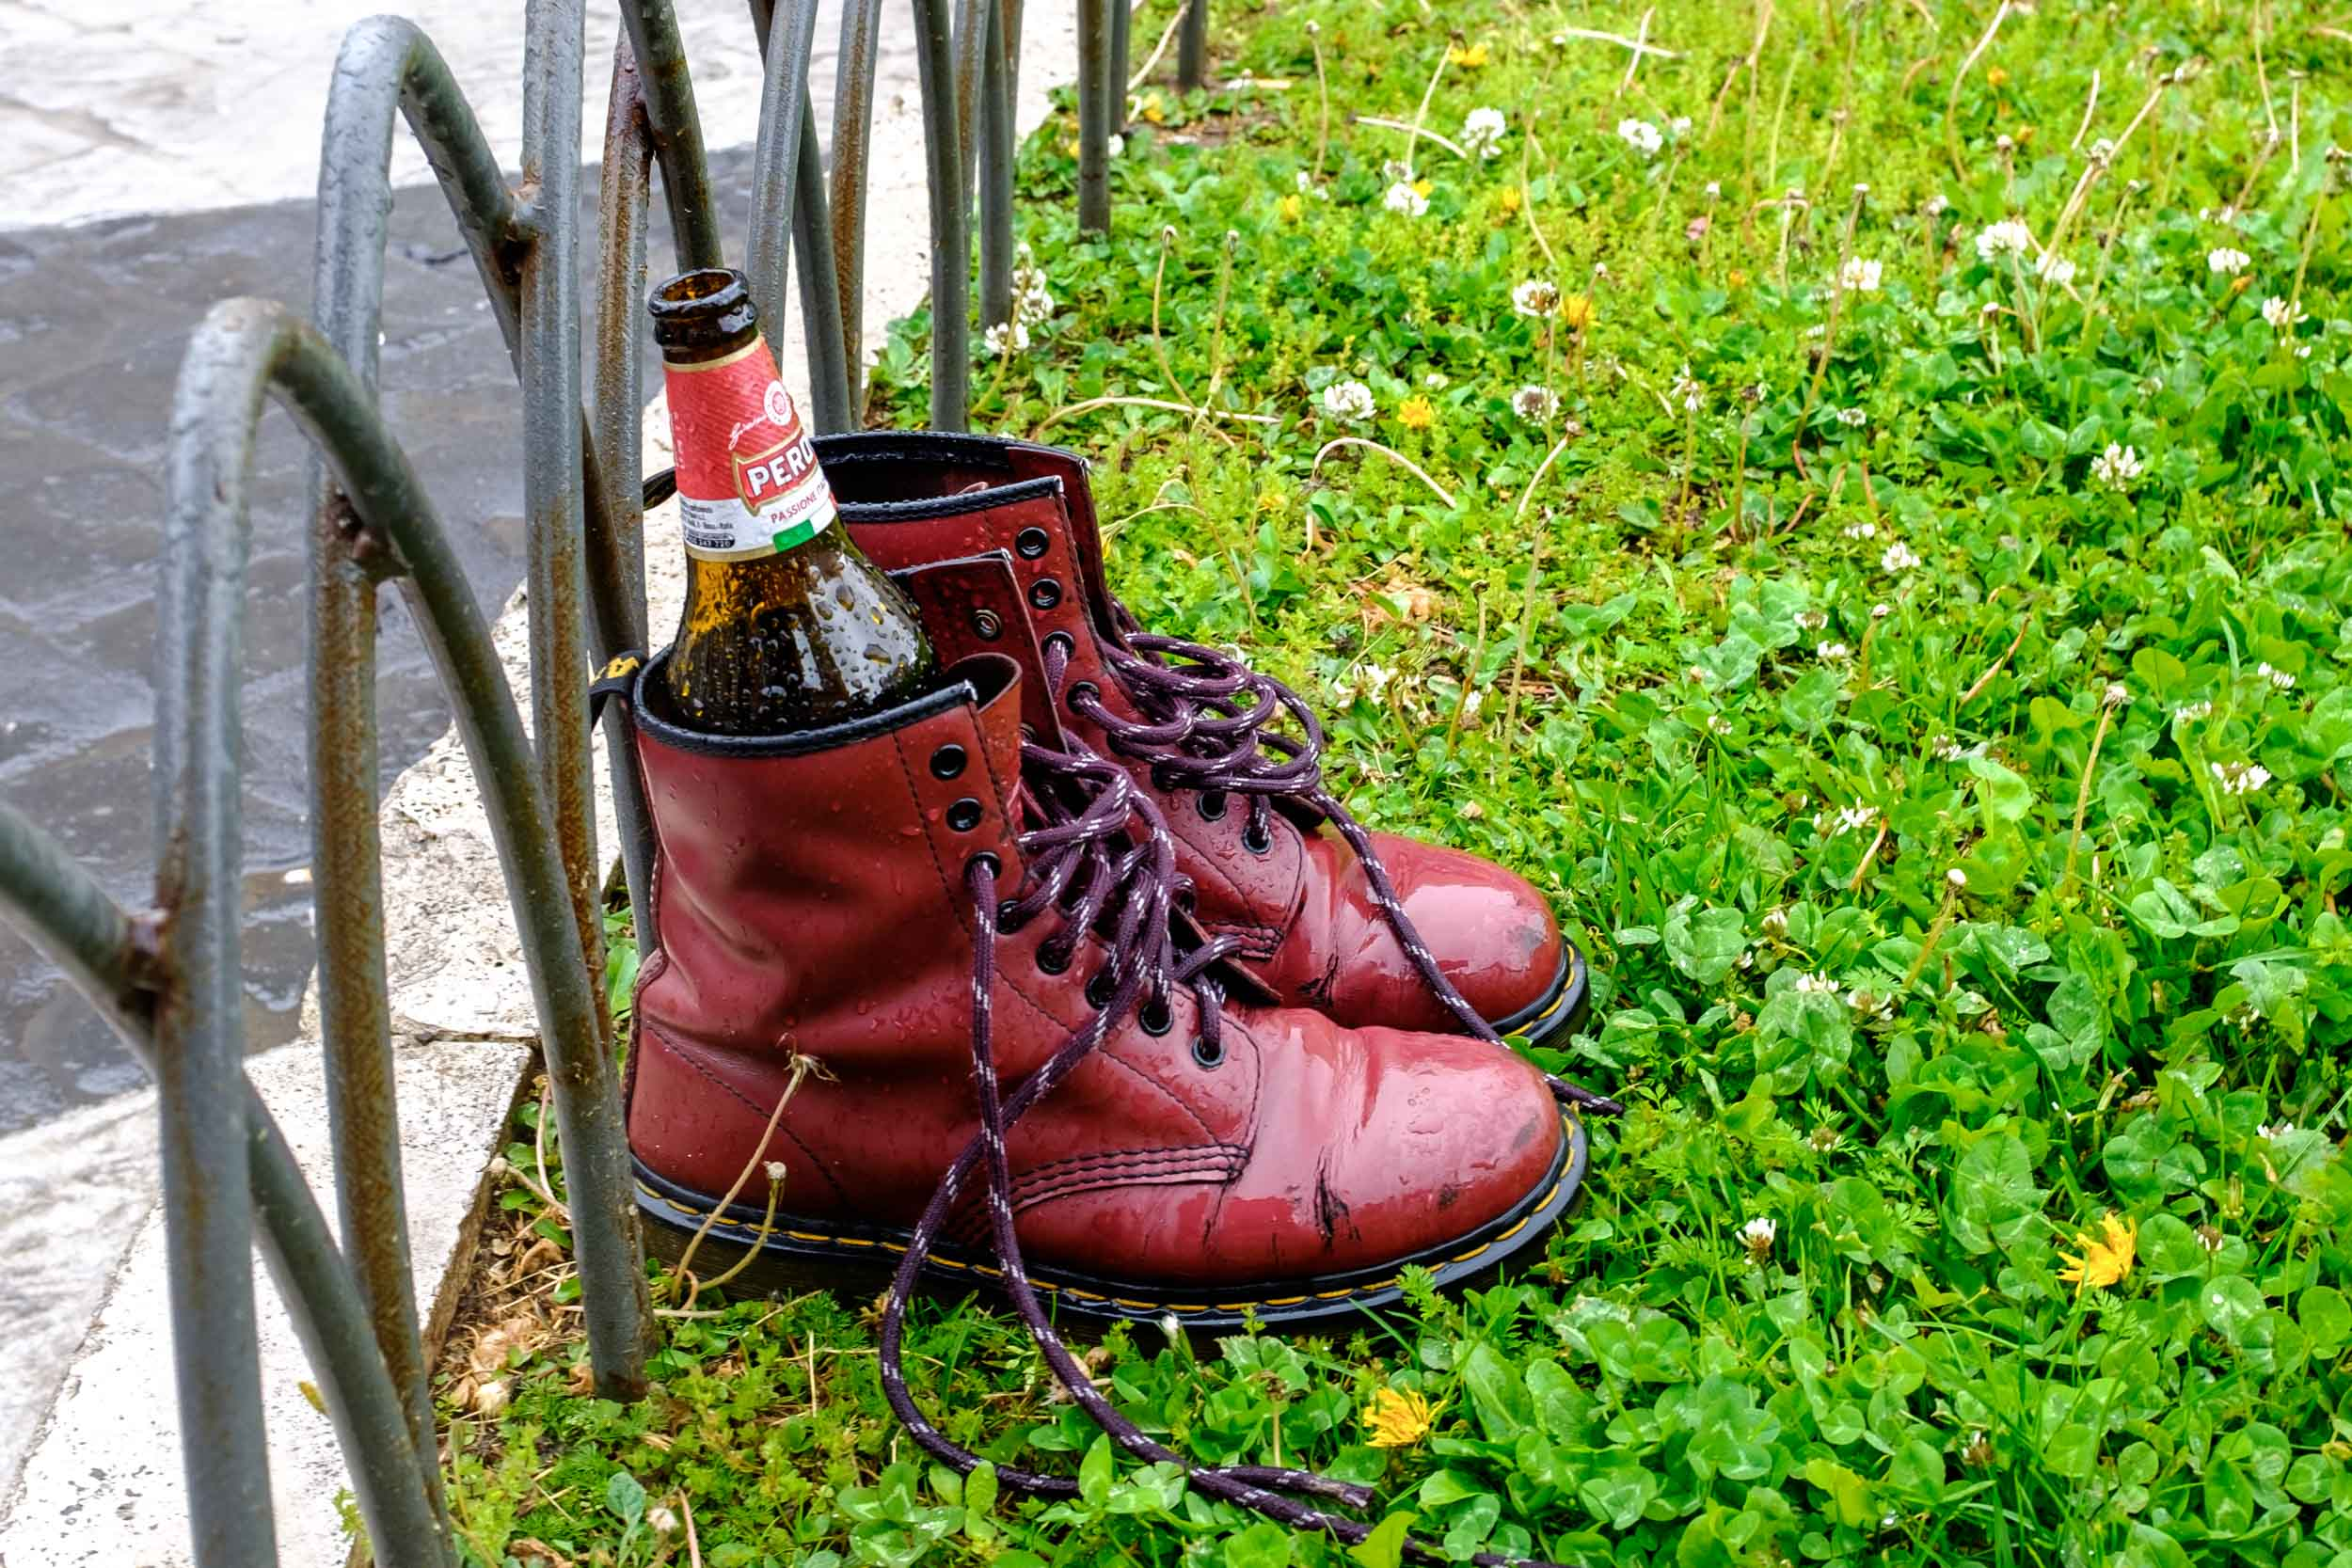 Beer Bottle and Boots. Rome 2019